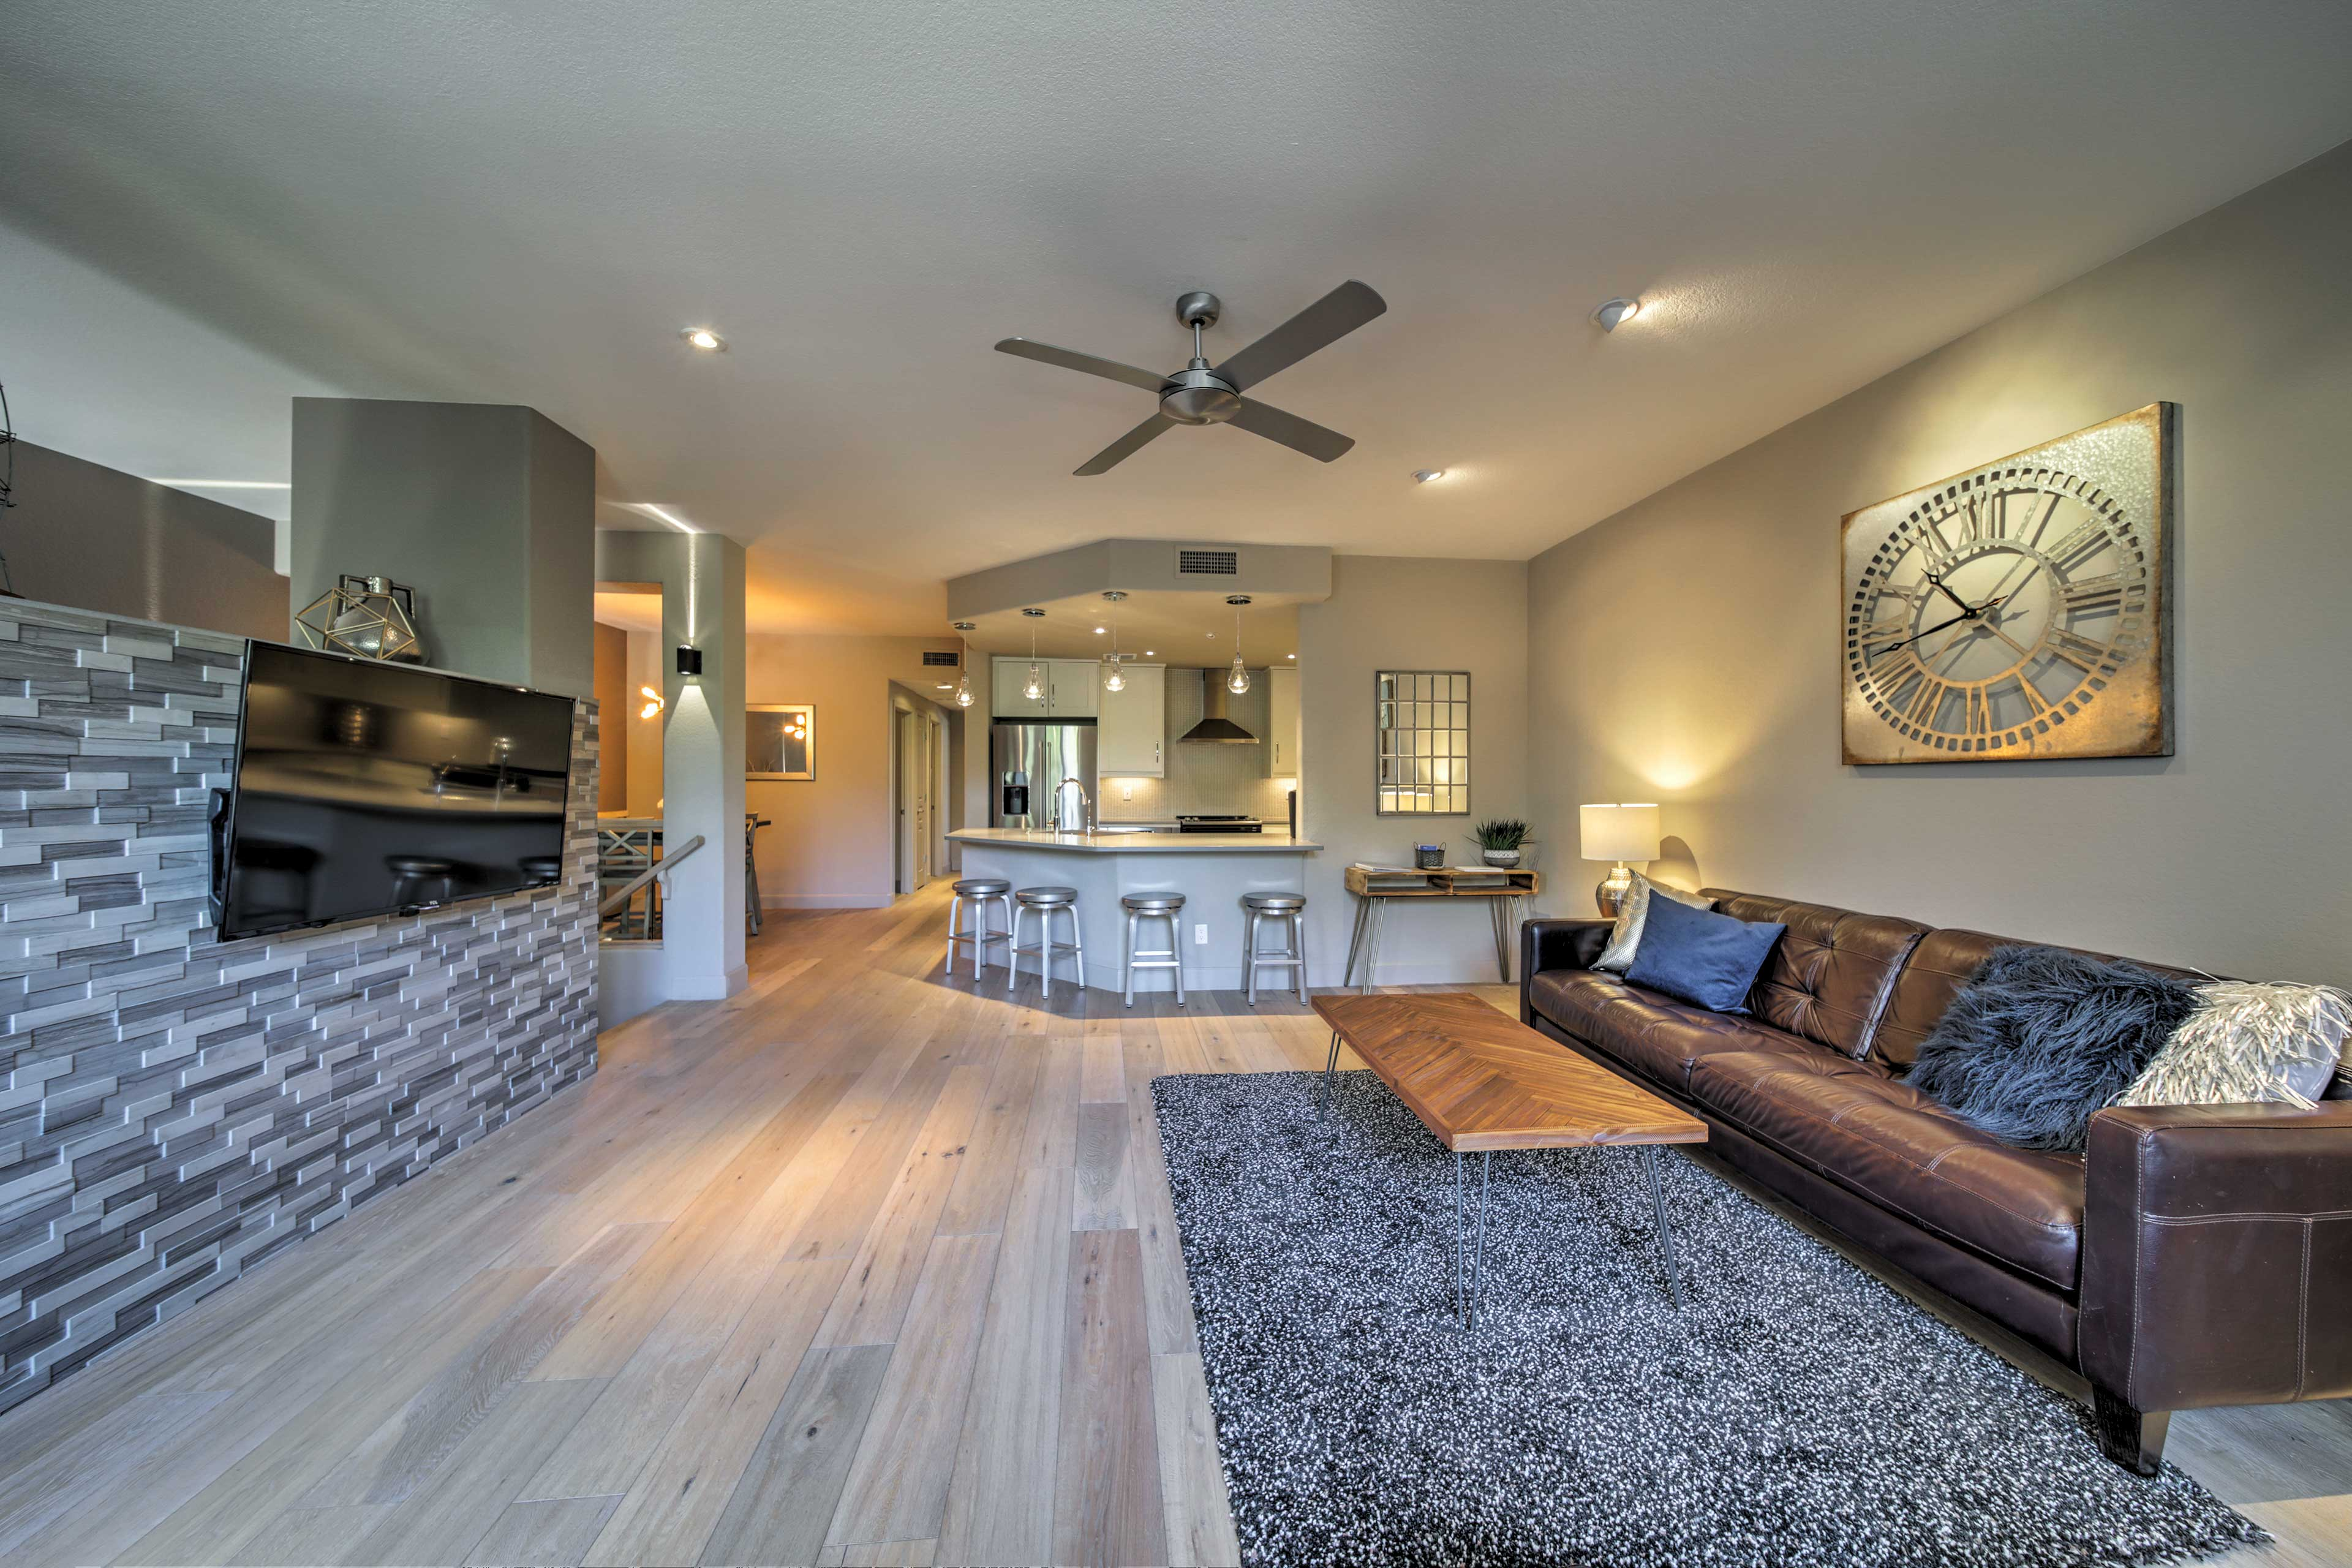 The modern decor gives the townhome a unique ambiance.